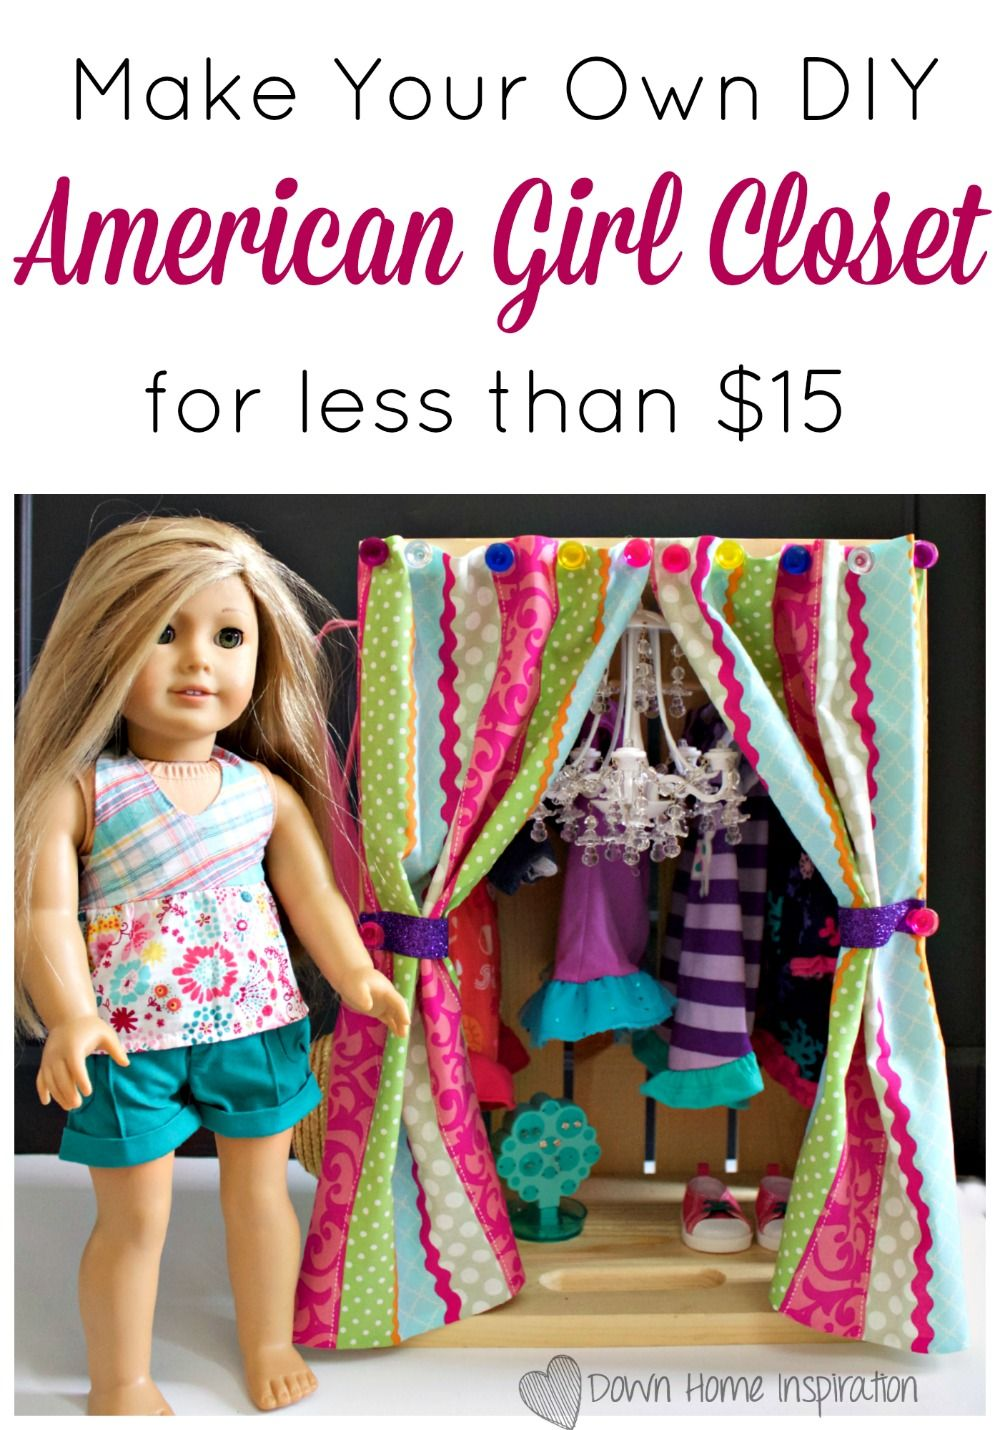 Make your own diy american girl closet for less than 15 for Create your own closet